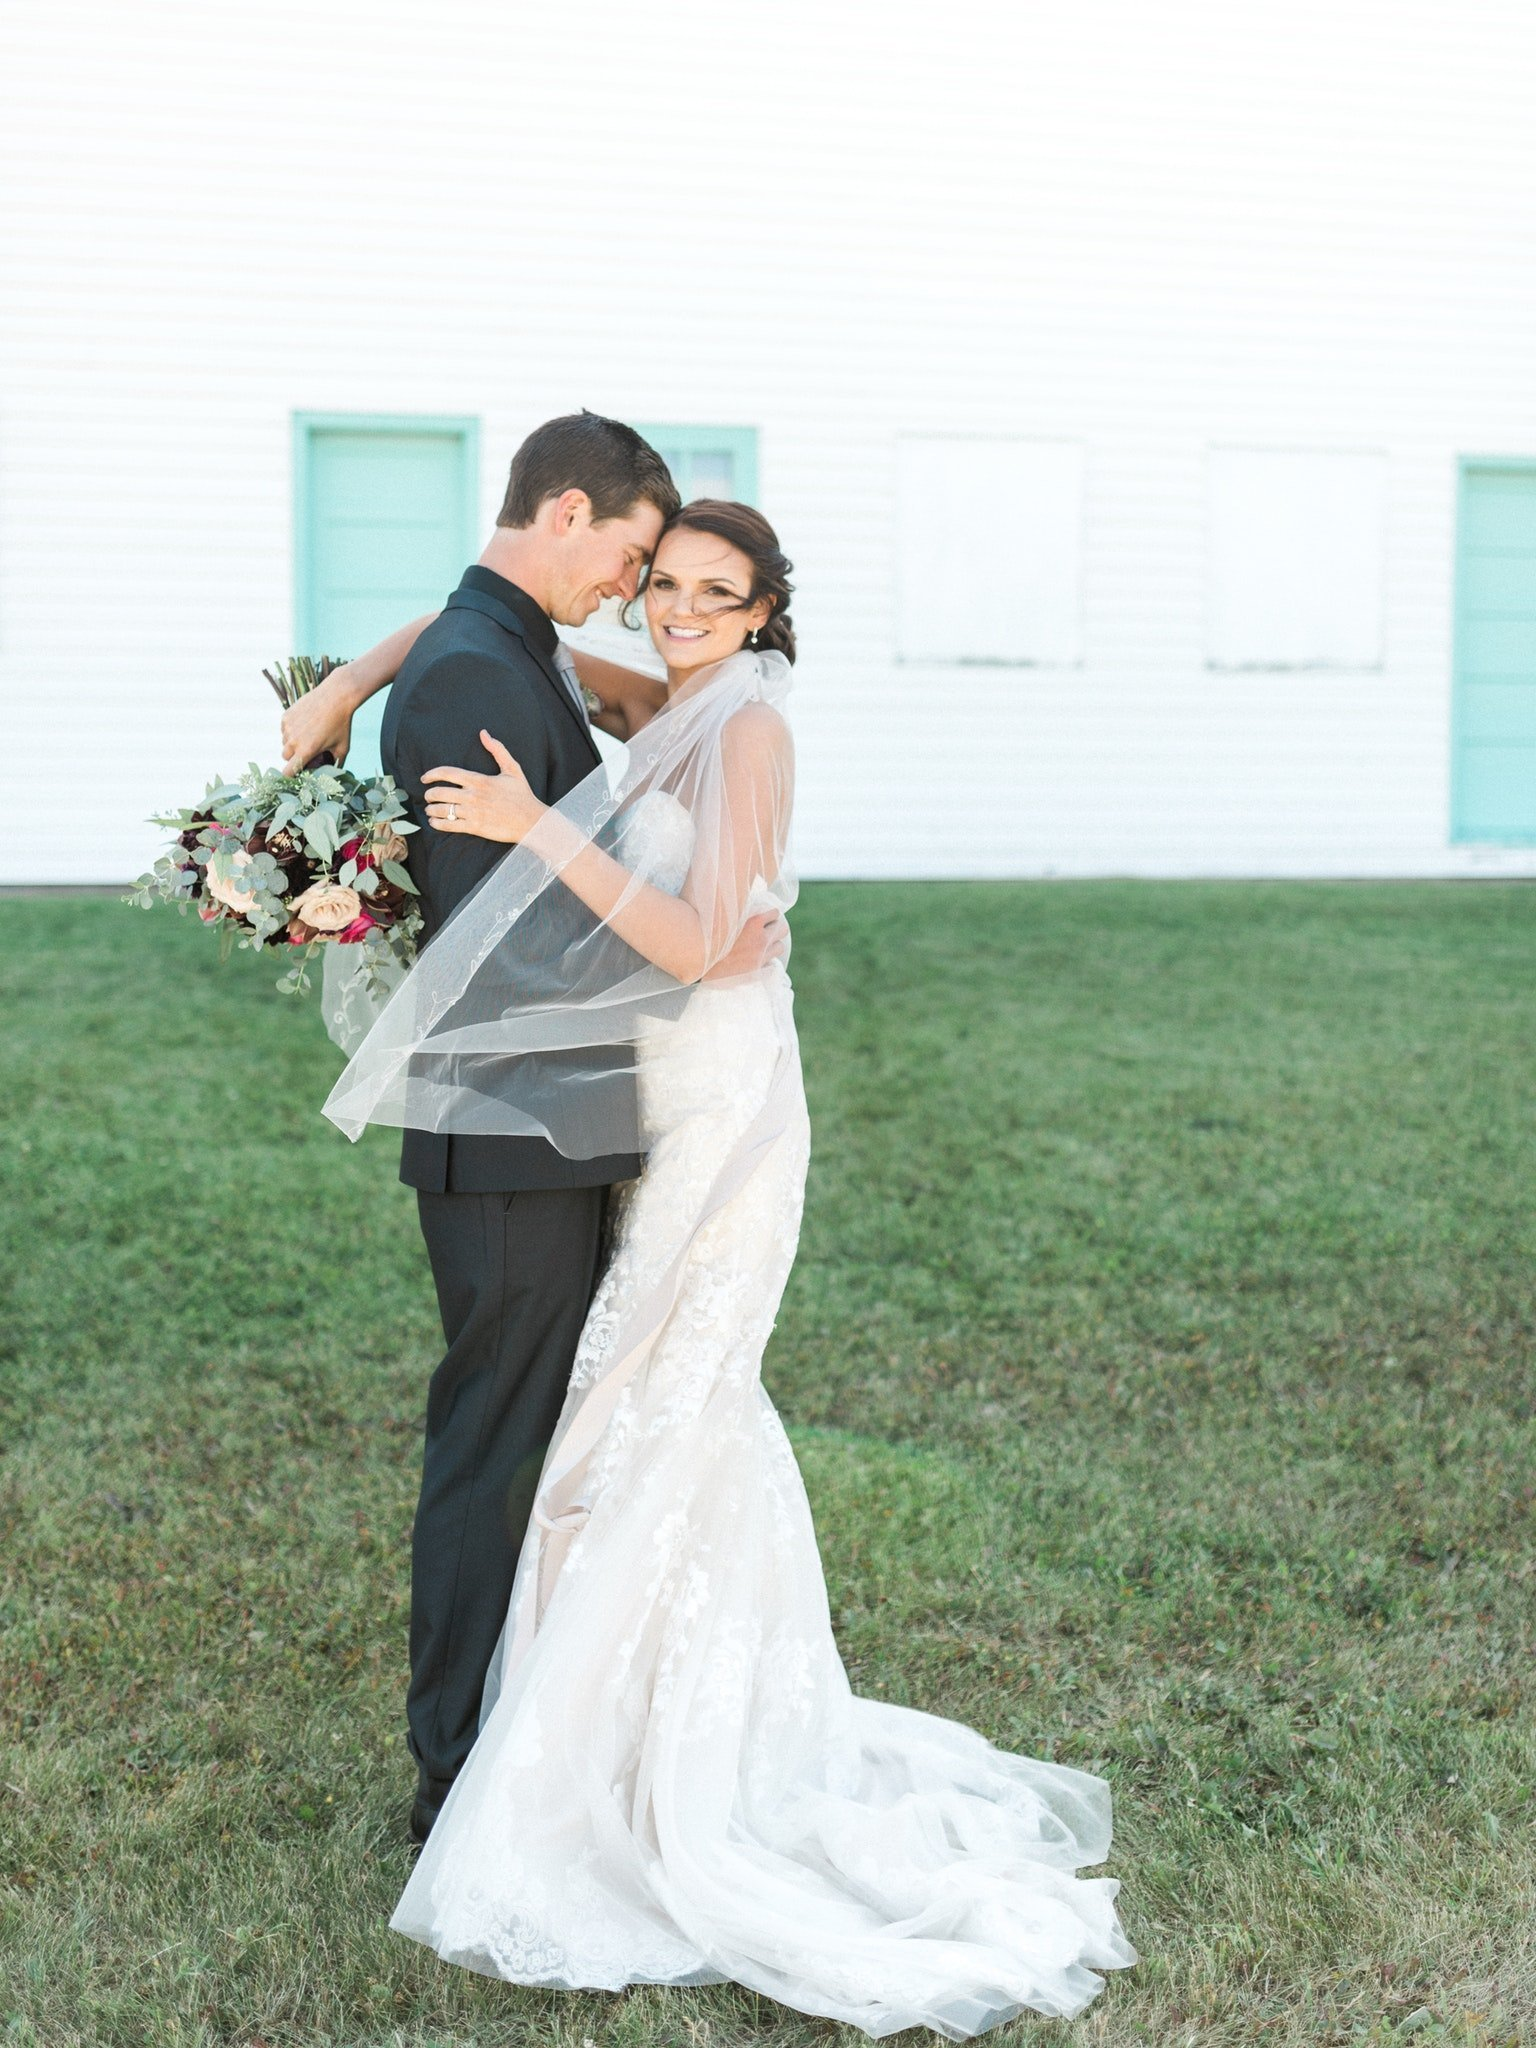 Groom and bride embrace while holding florals